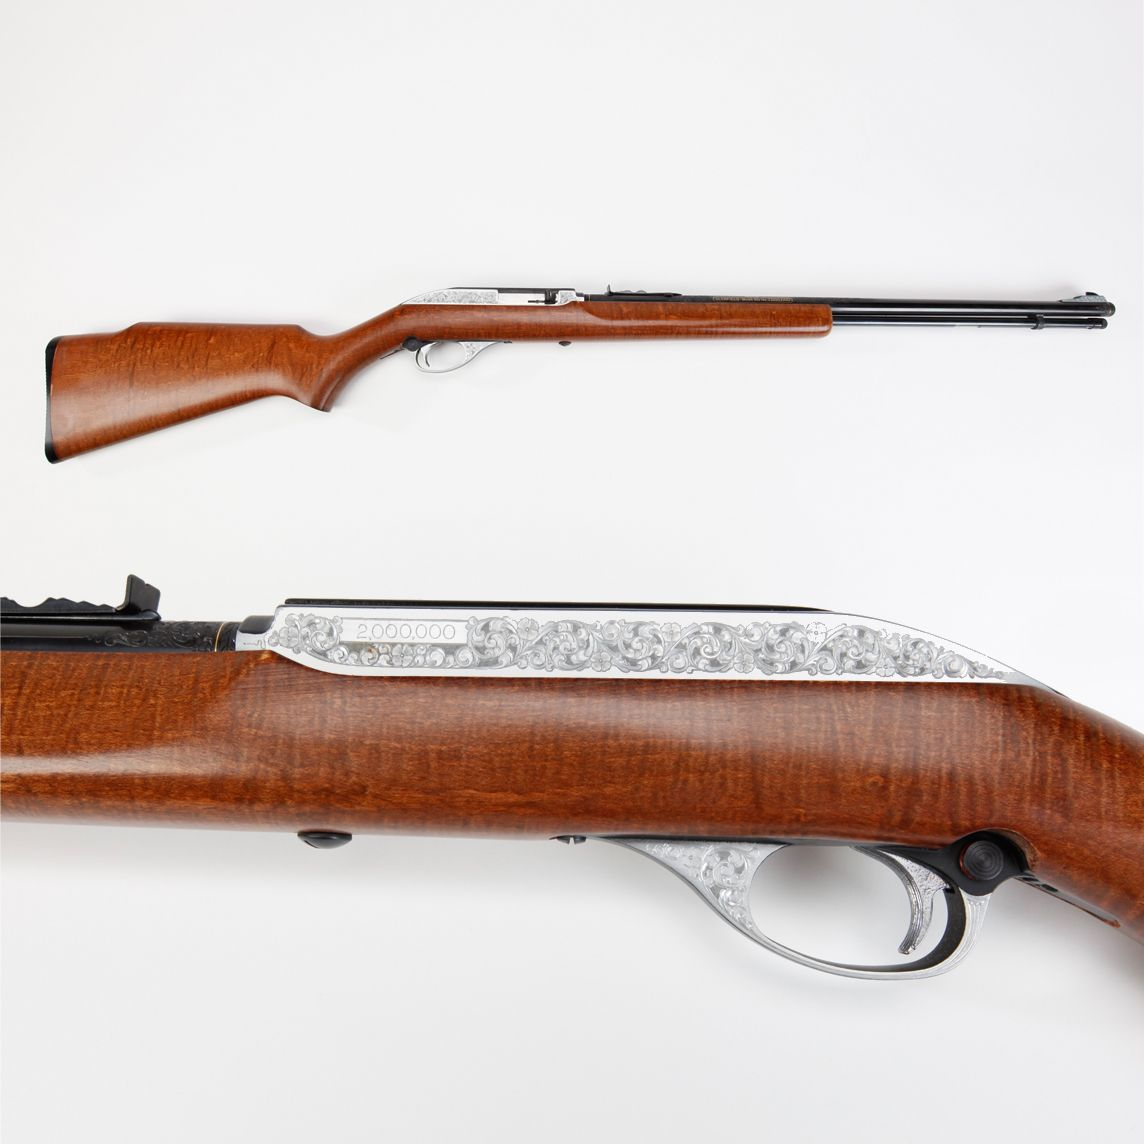 Marlin glenfield model 60 rifle the gotd is serial number guns pooptronica